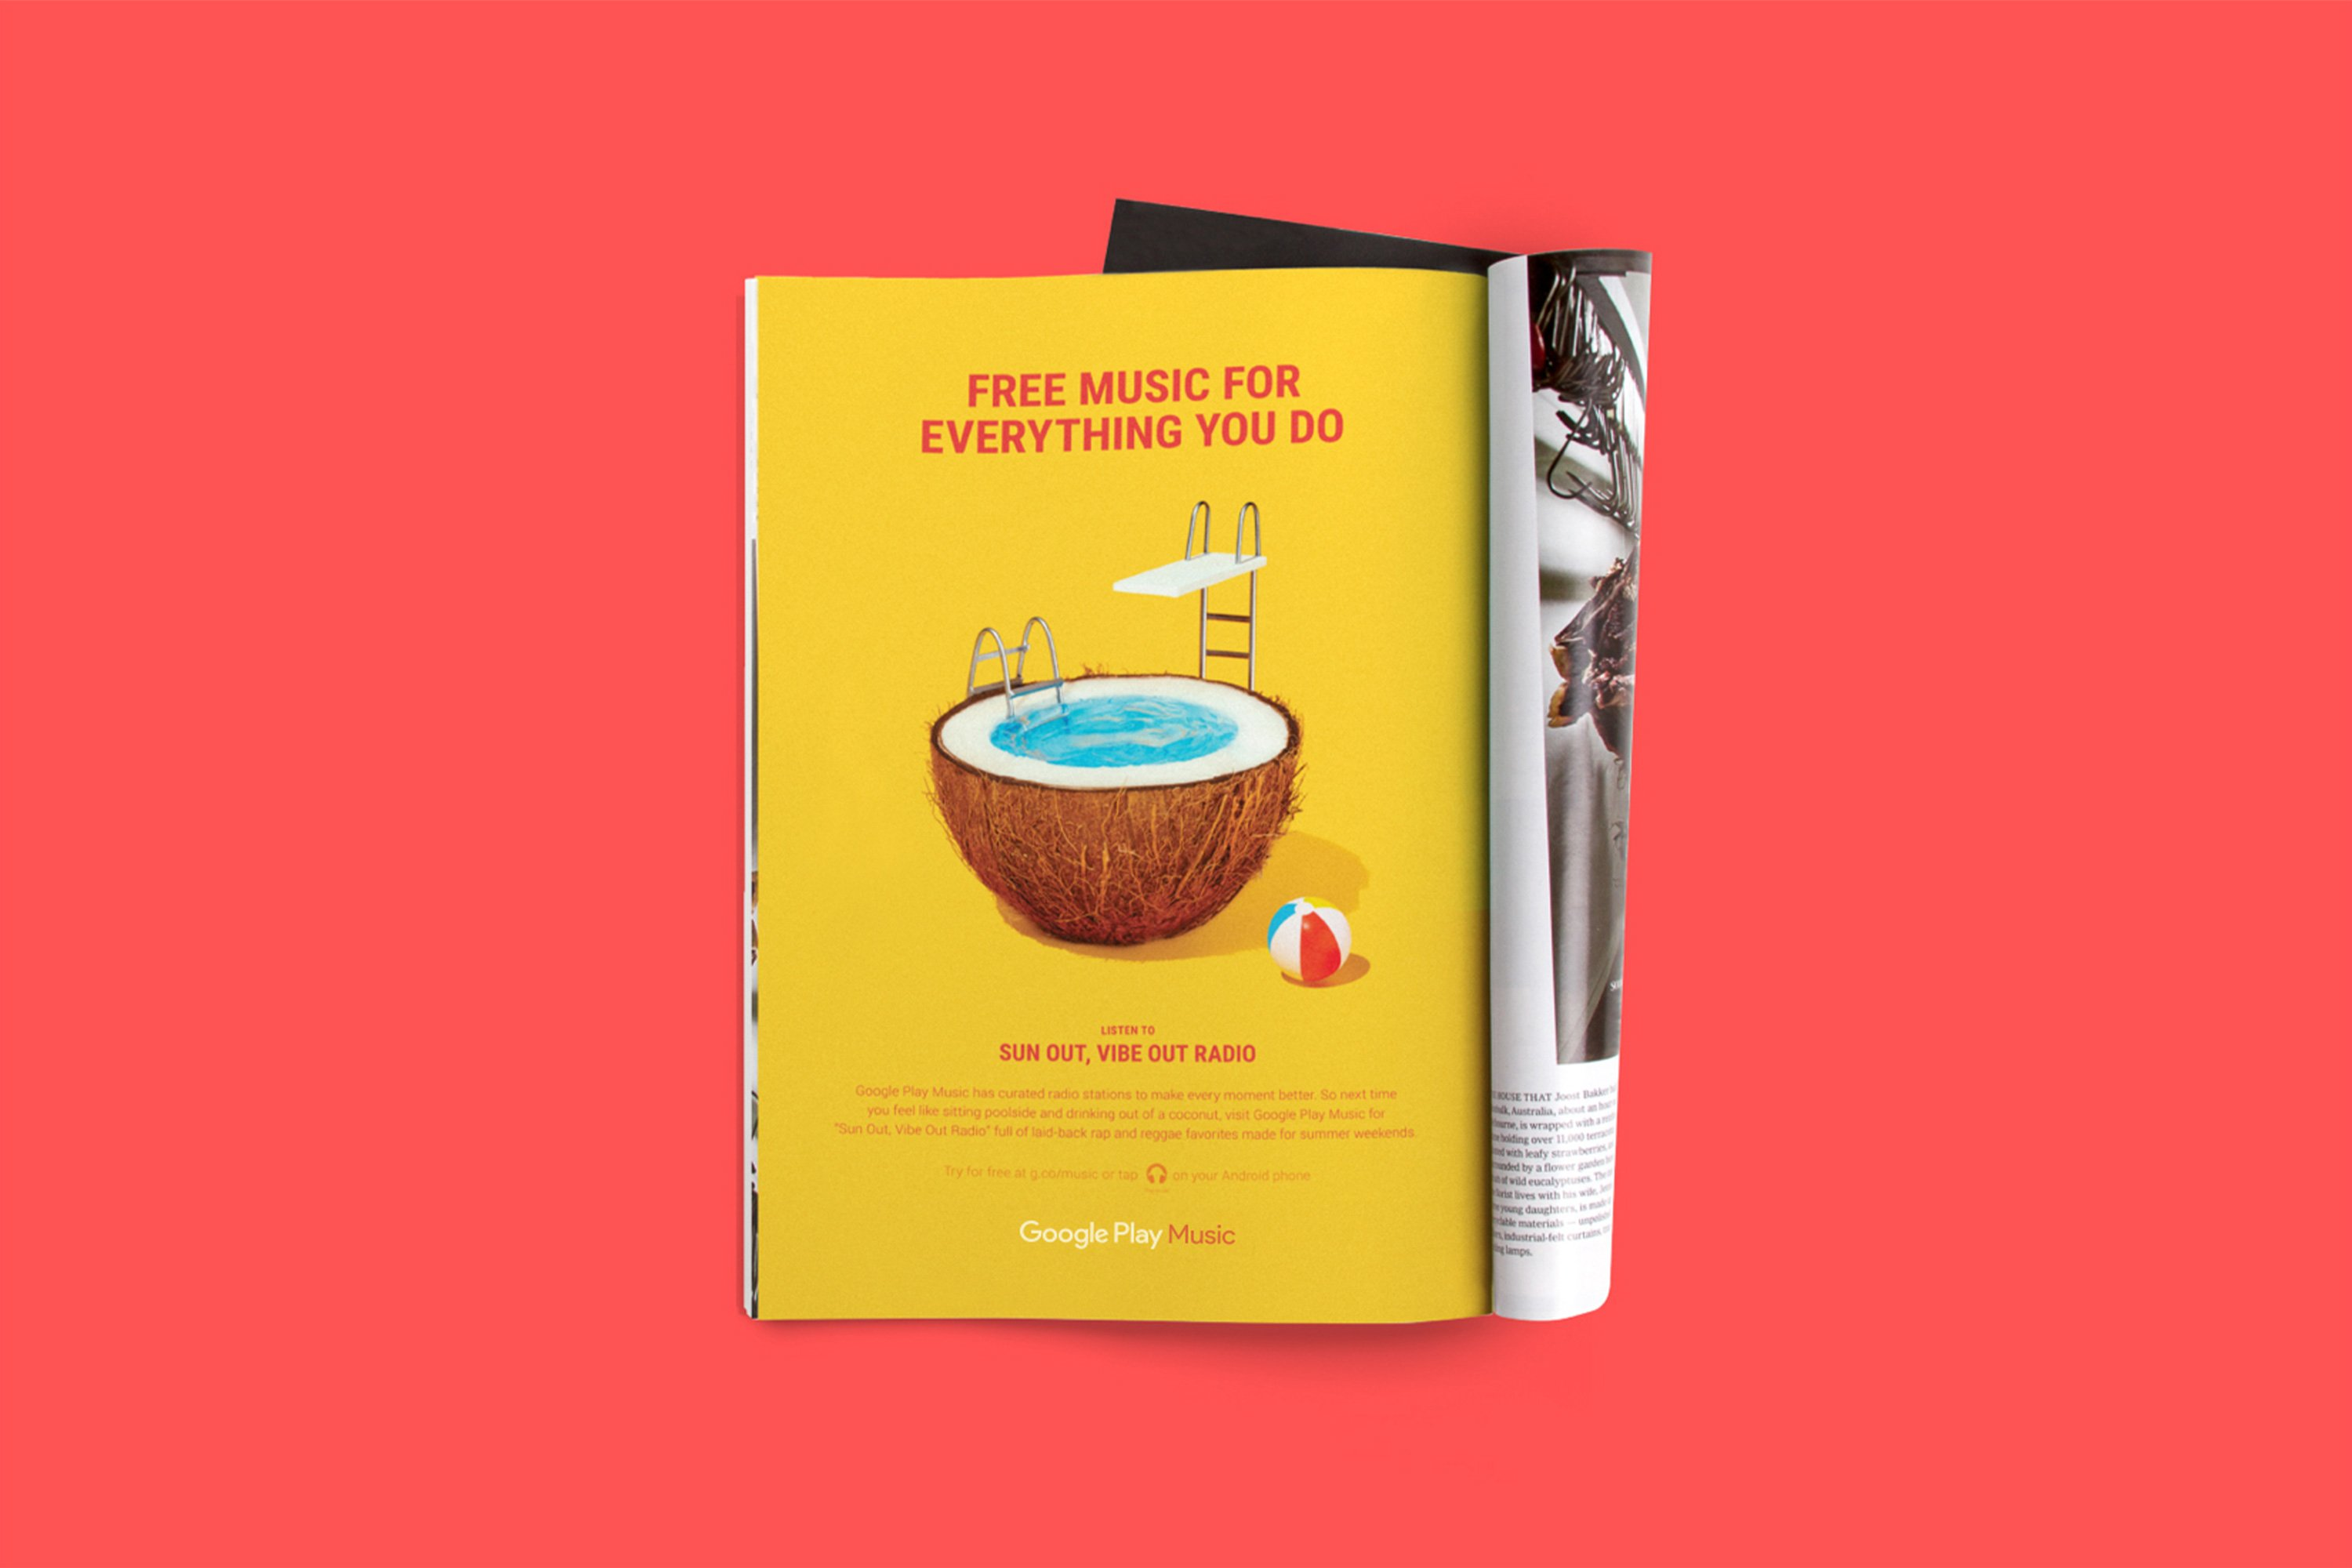 Google Play Music ad in magazine. Free Music For Everything You Do. Featuring half a coconut turned into a pool with diving board. Suns Out, Vibe Out Radio. Campaign concept and Art Direction by RoAndCo